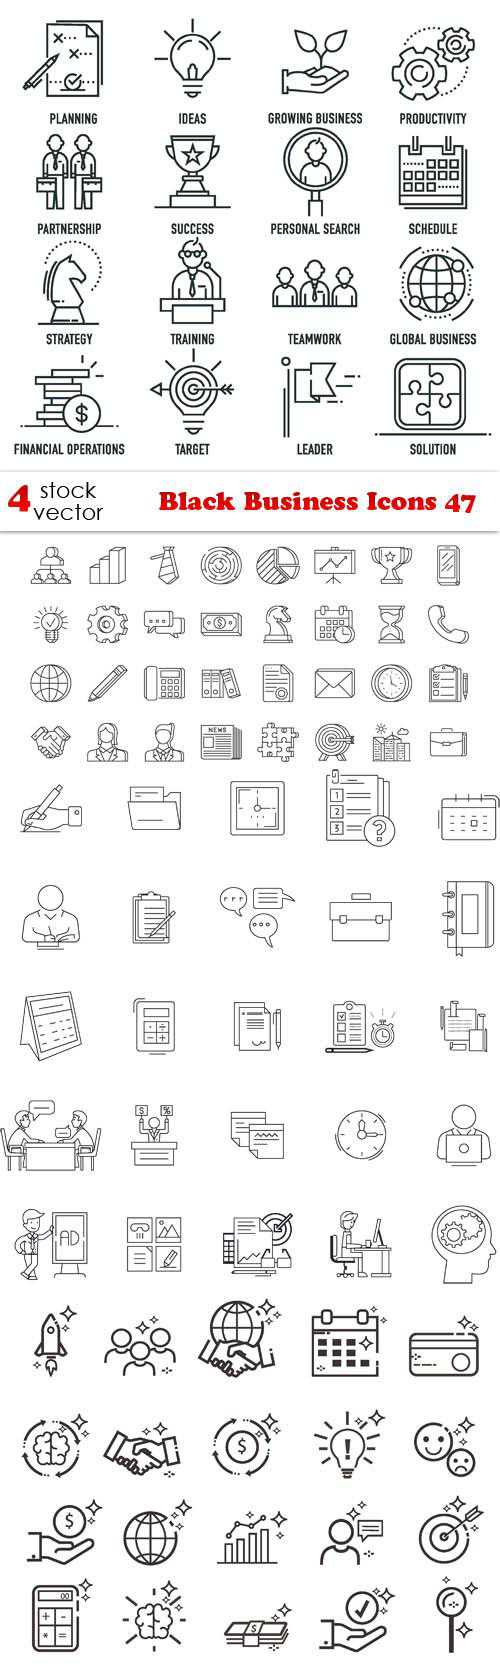 Black Business Icons 47